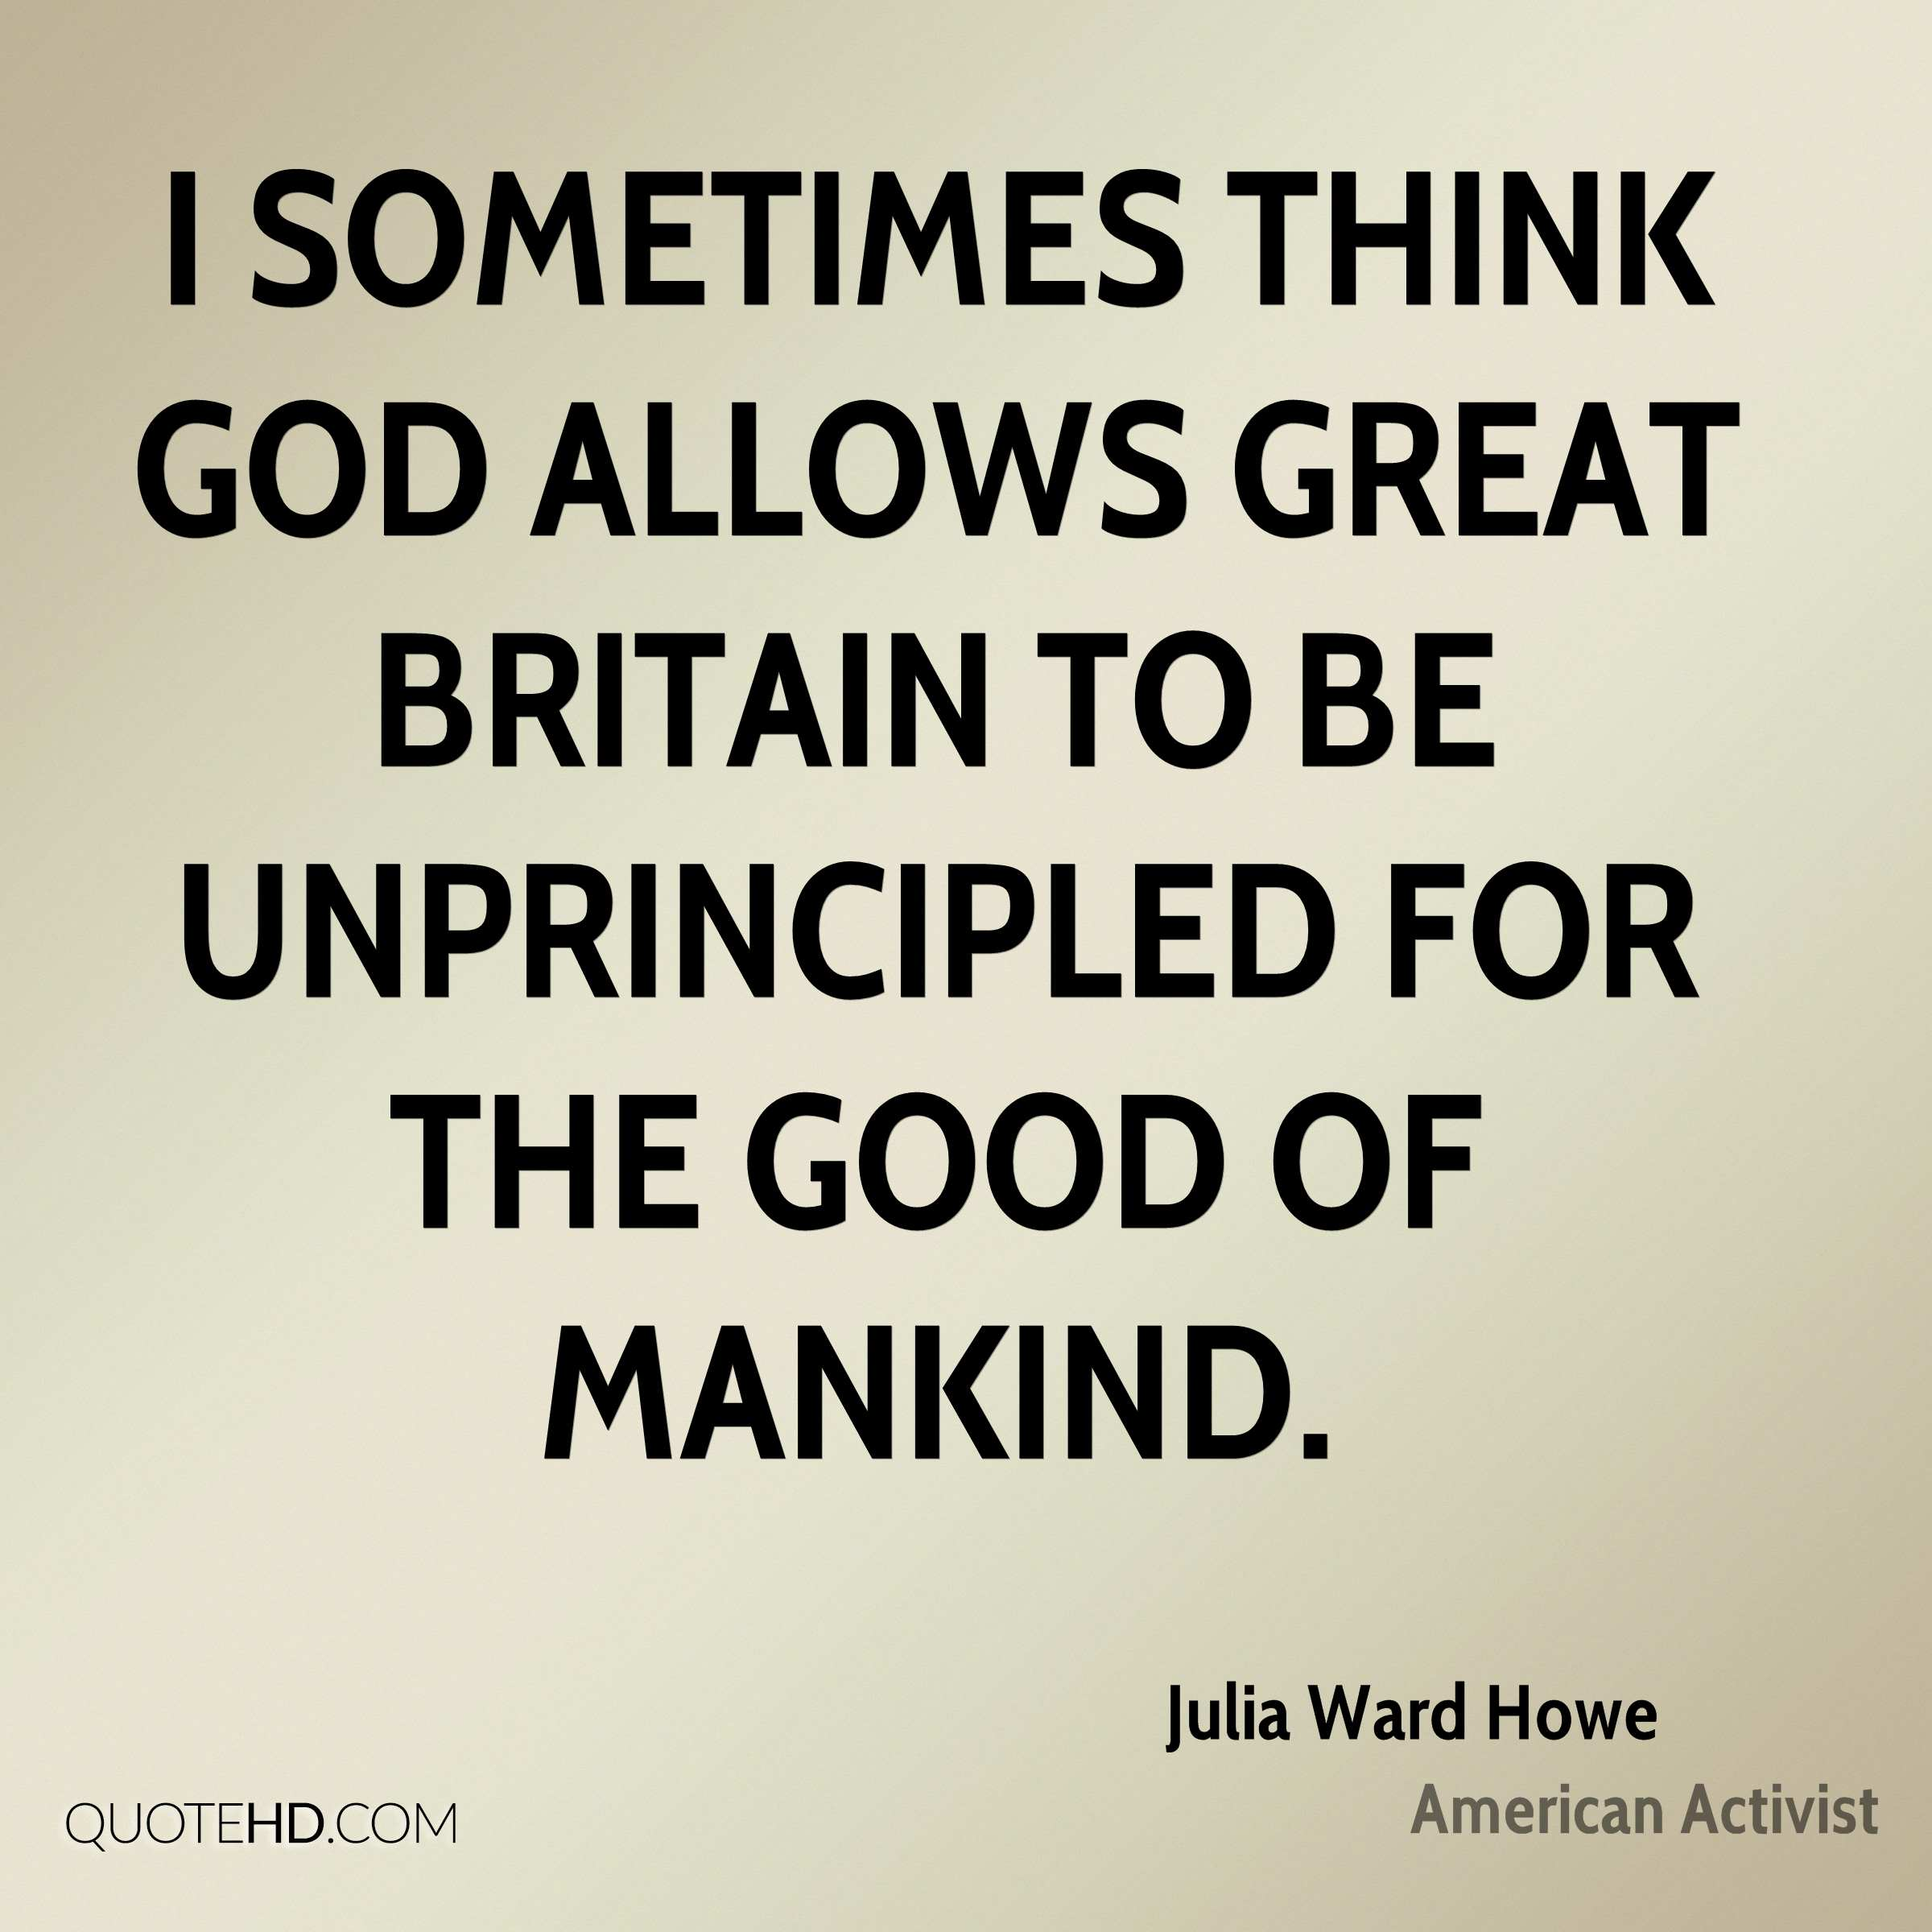 I sometimes think God allows Great Britain to be unprincipled for the good of mankind.